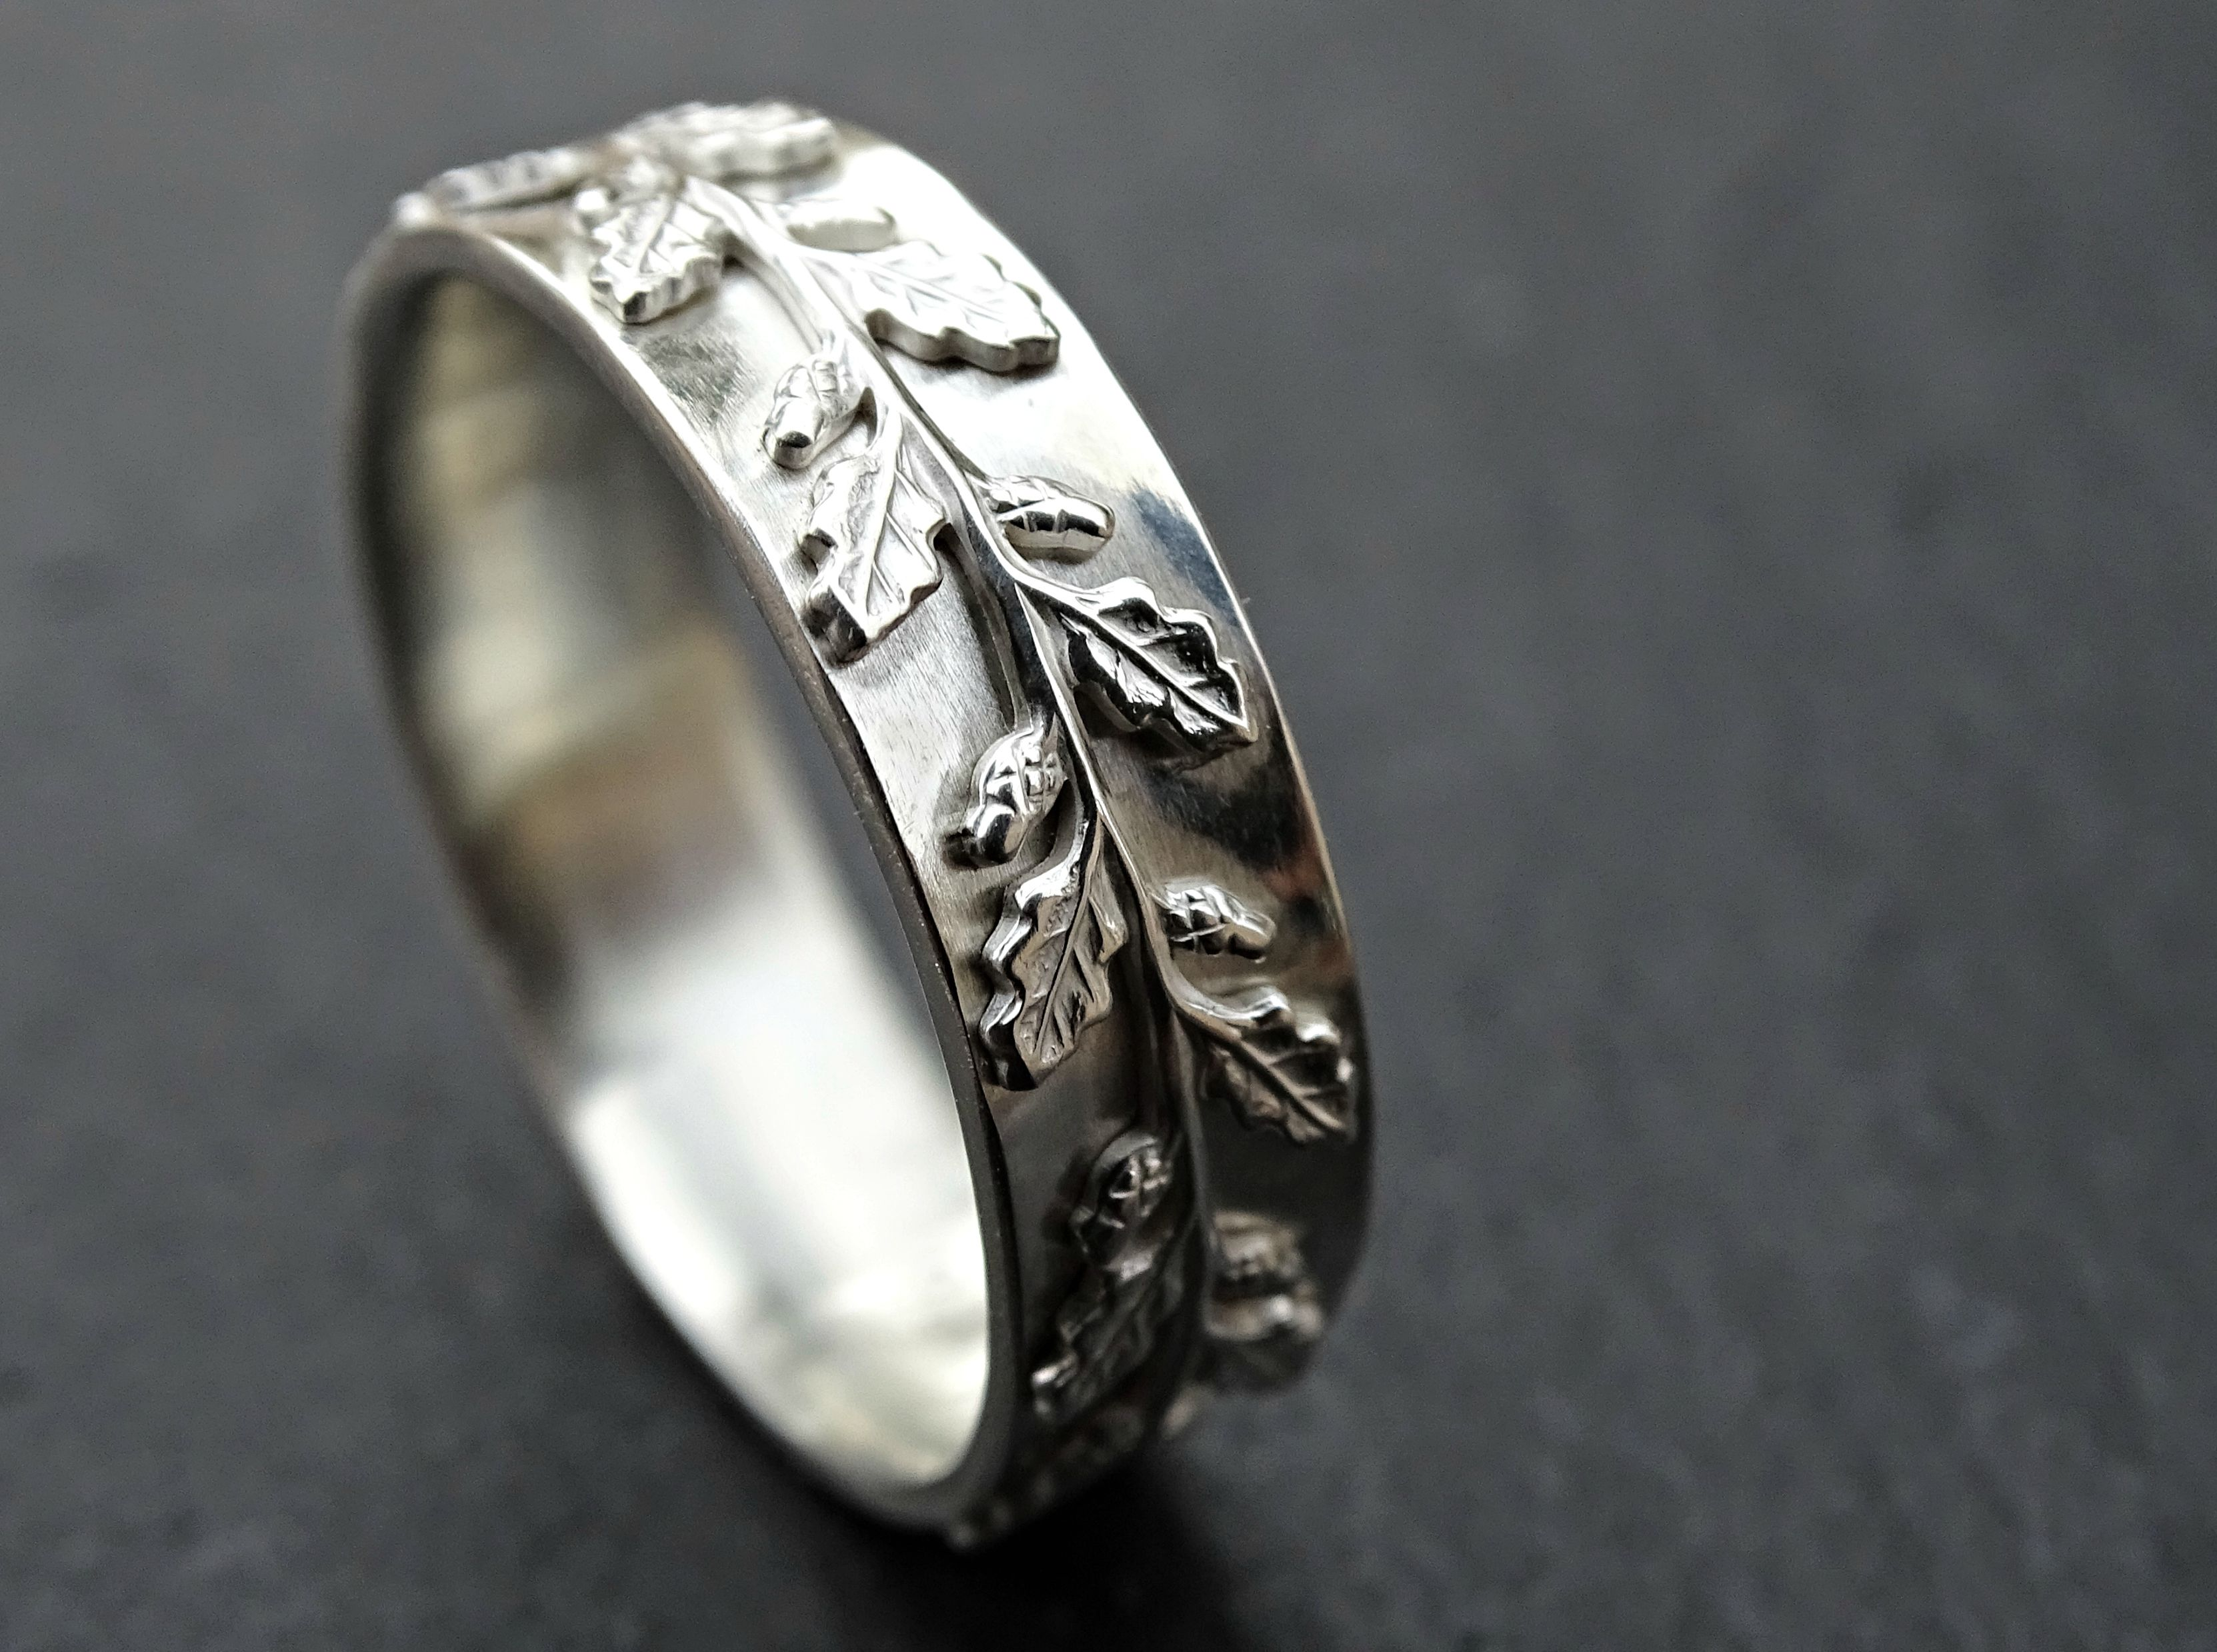 gold of bands ring wedding mens gallery wide band men filigree concept decor ideas white europeanptaonline best